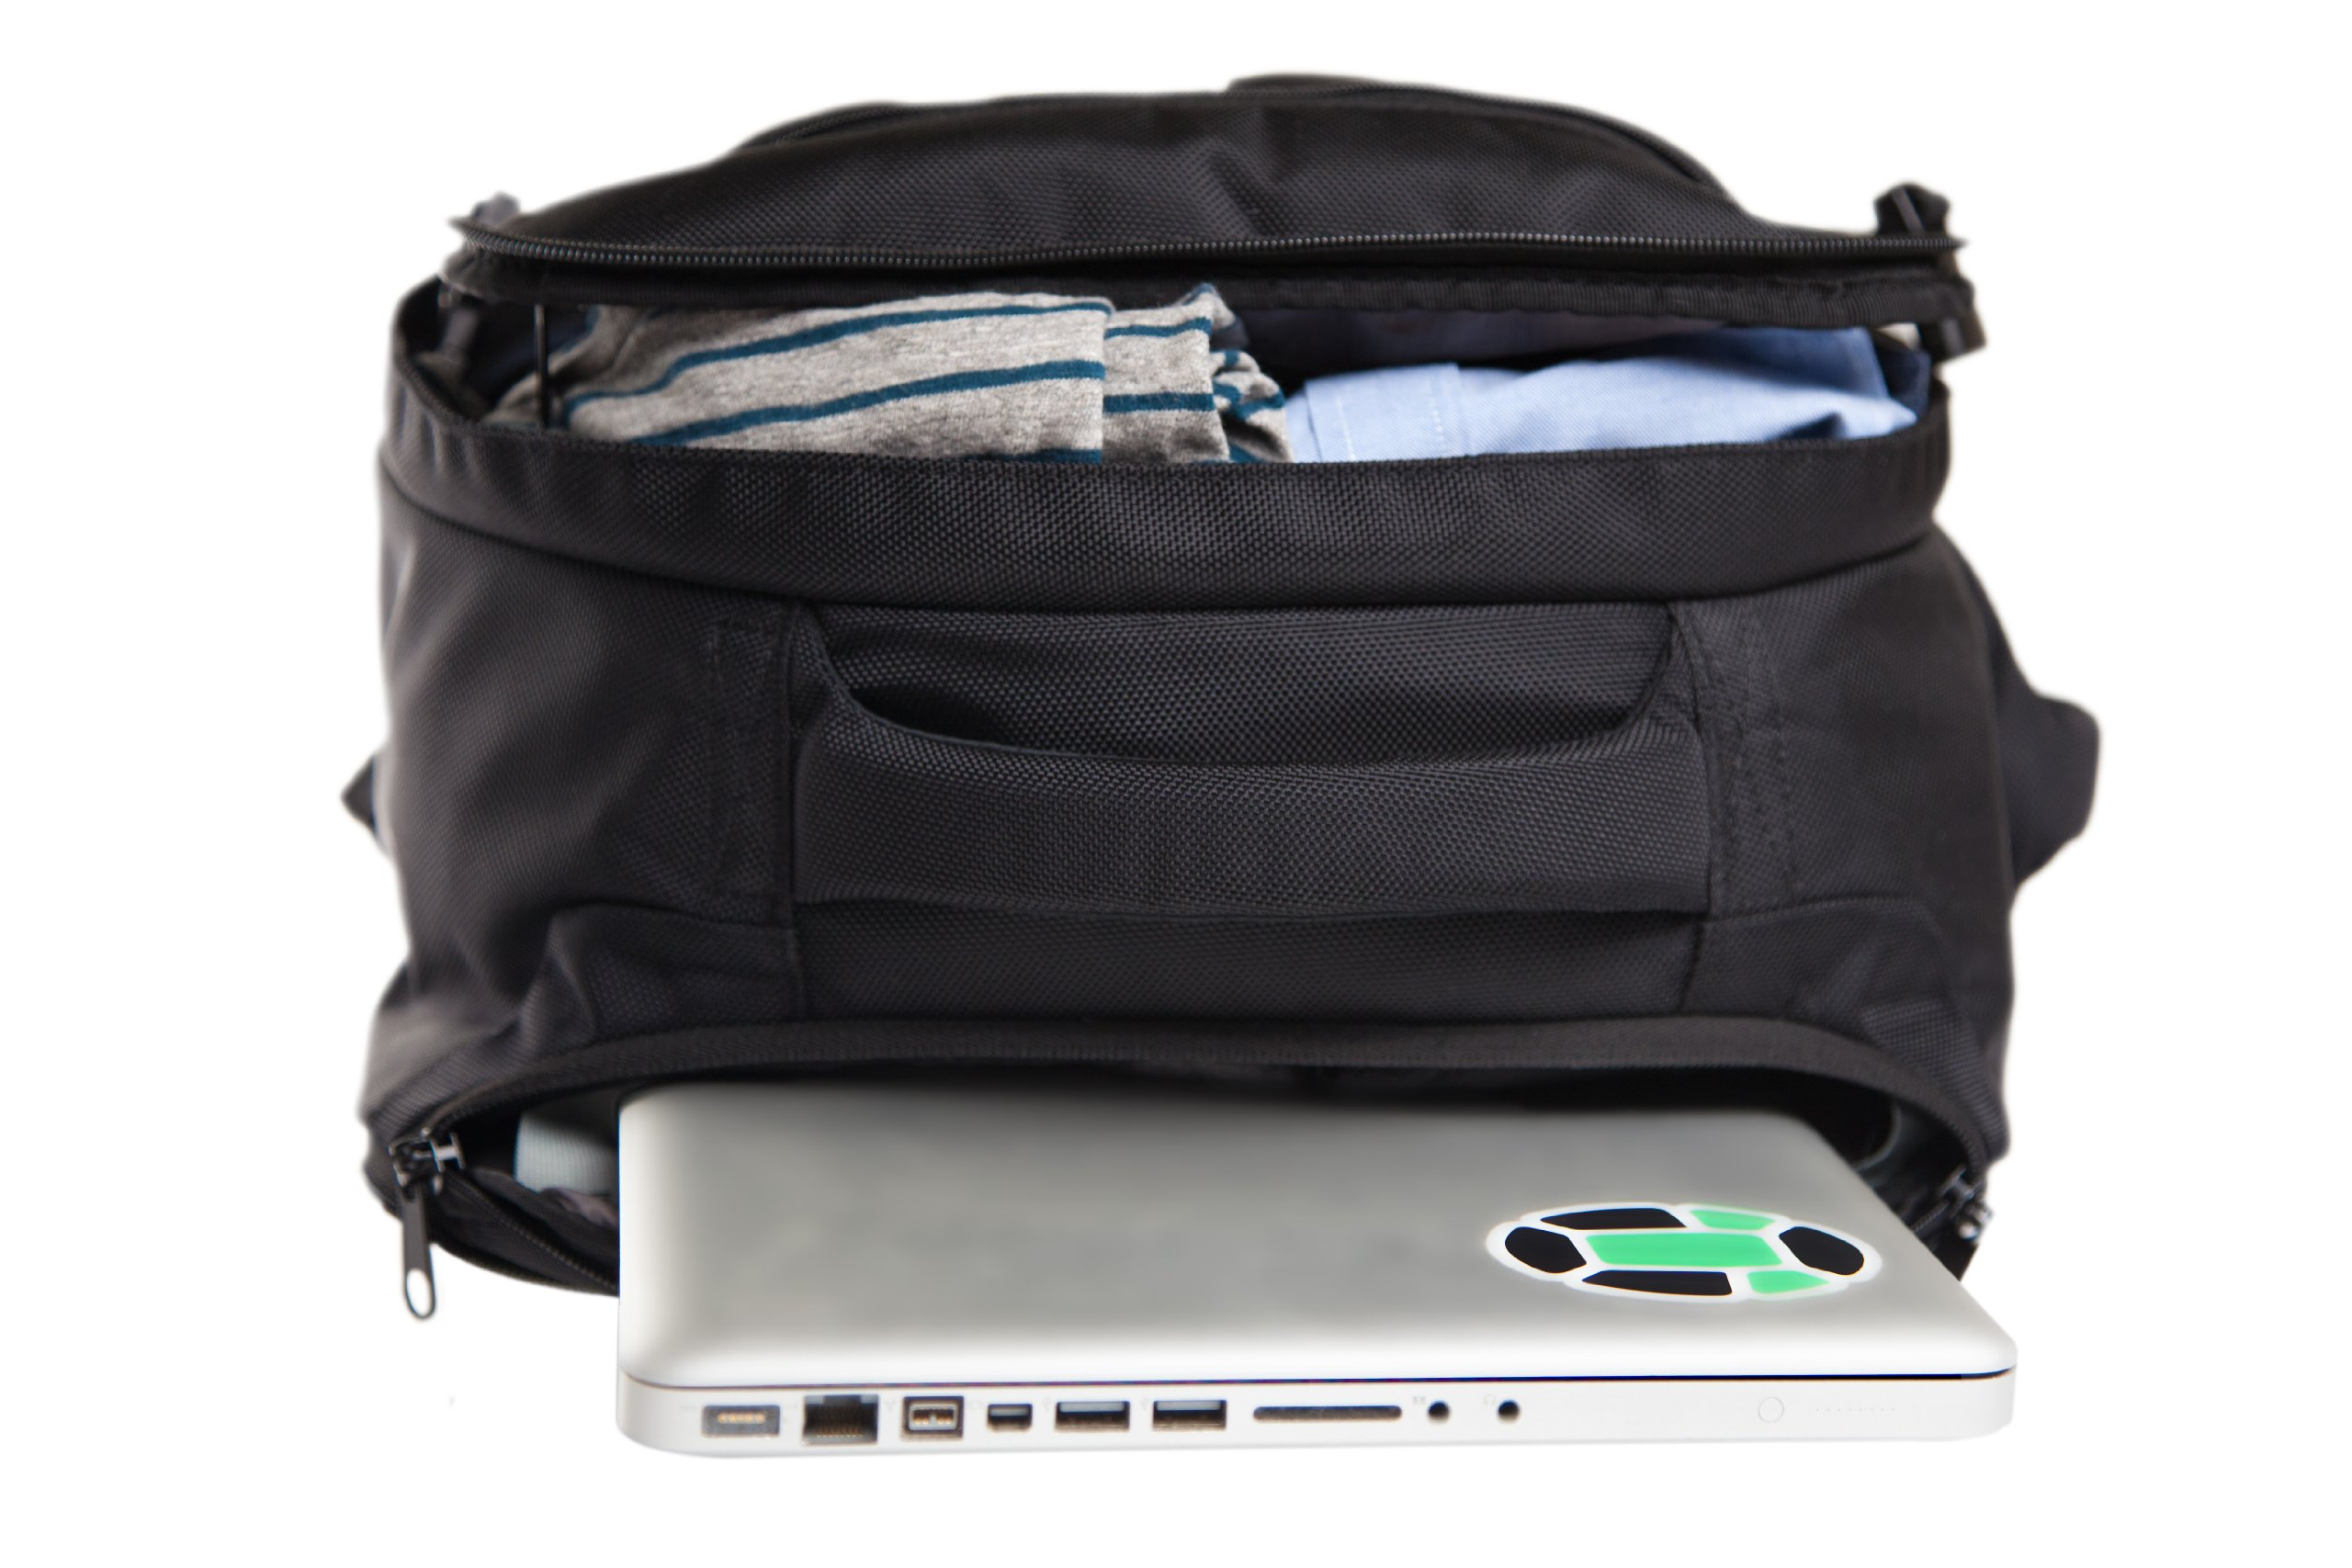 Tortuga Travel Backpack - 44L Maximum-Sized Carry On Travel Backpack by Tortuga (Image #6)